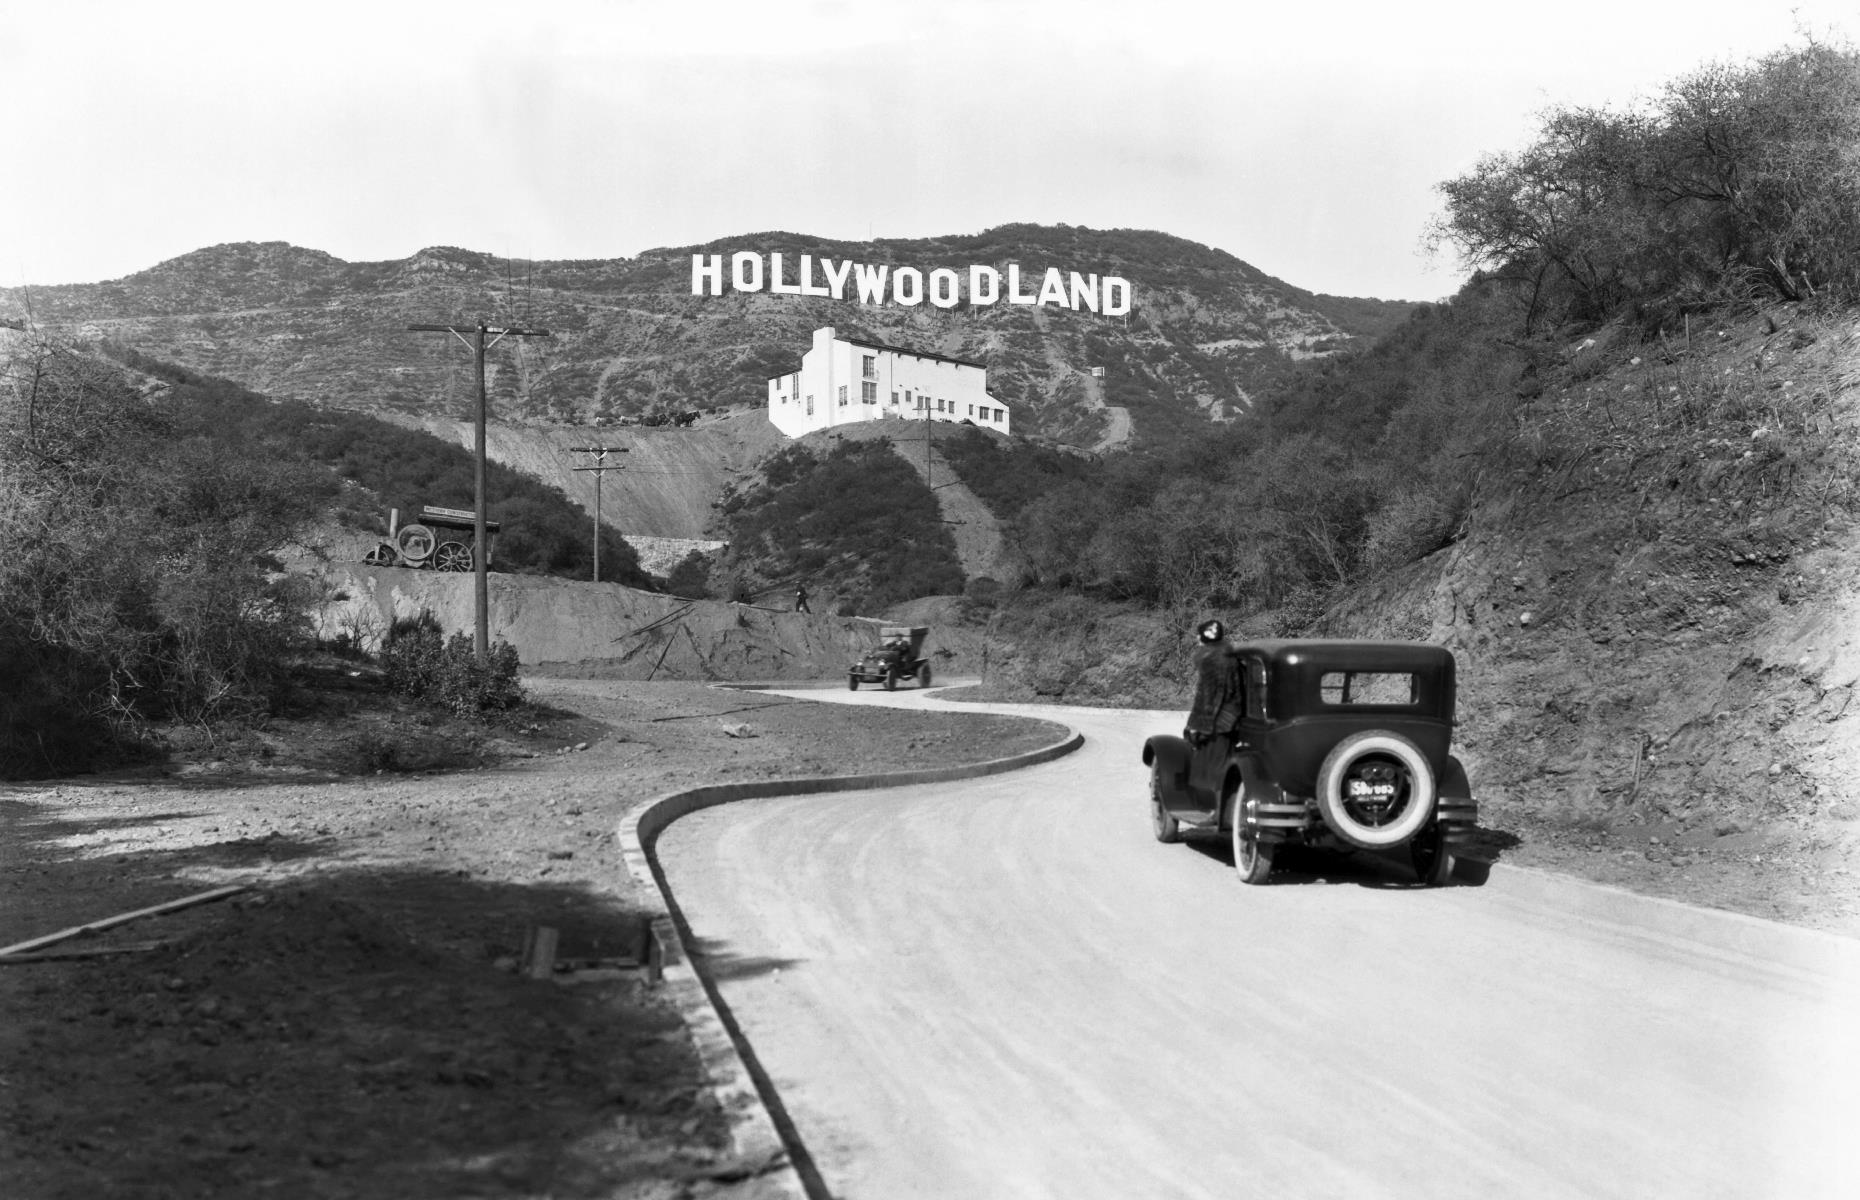 "Slide 31 of 32: The Hollywood Hills might look rather bare without their world-famous sign but the ginormous white letters were only meant to be a temporary instalment. The sign originally read ""Hollywoodland"" and was erected to mark a brand new housing development in the 1920s. Its creators intended it to stand over the swathe of swanky real estate for a year and a half. Take a look at America's historic attractions in their heyday."